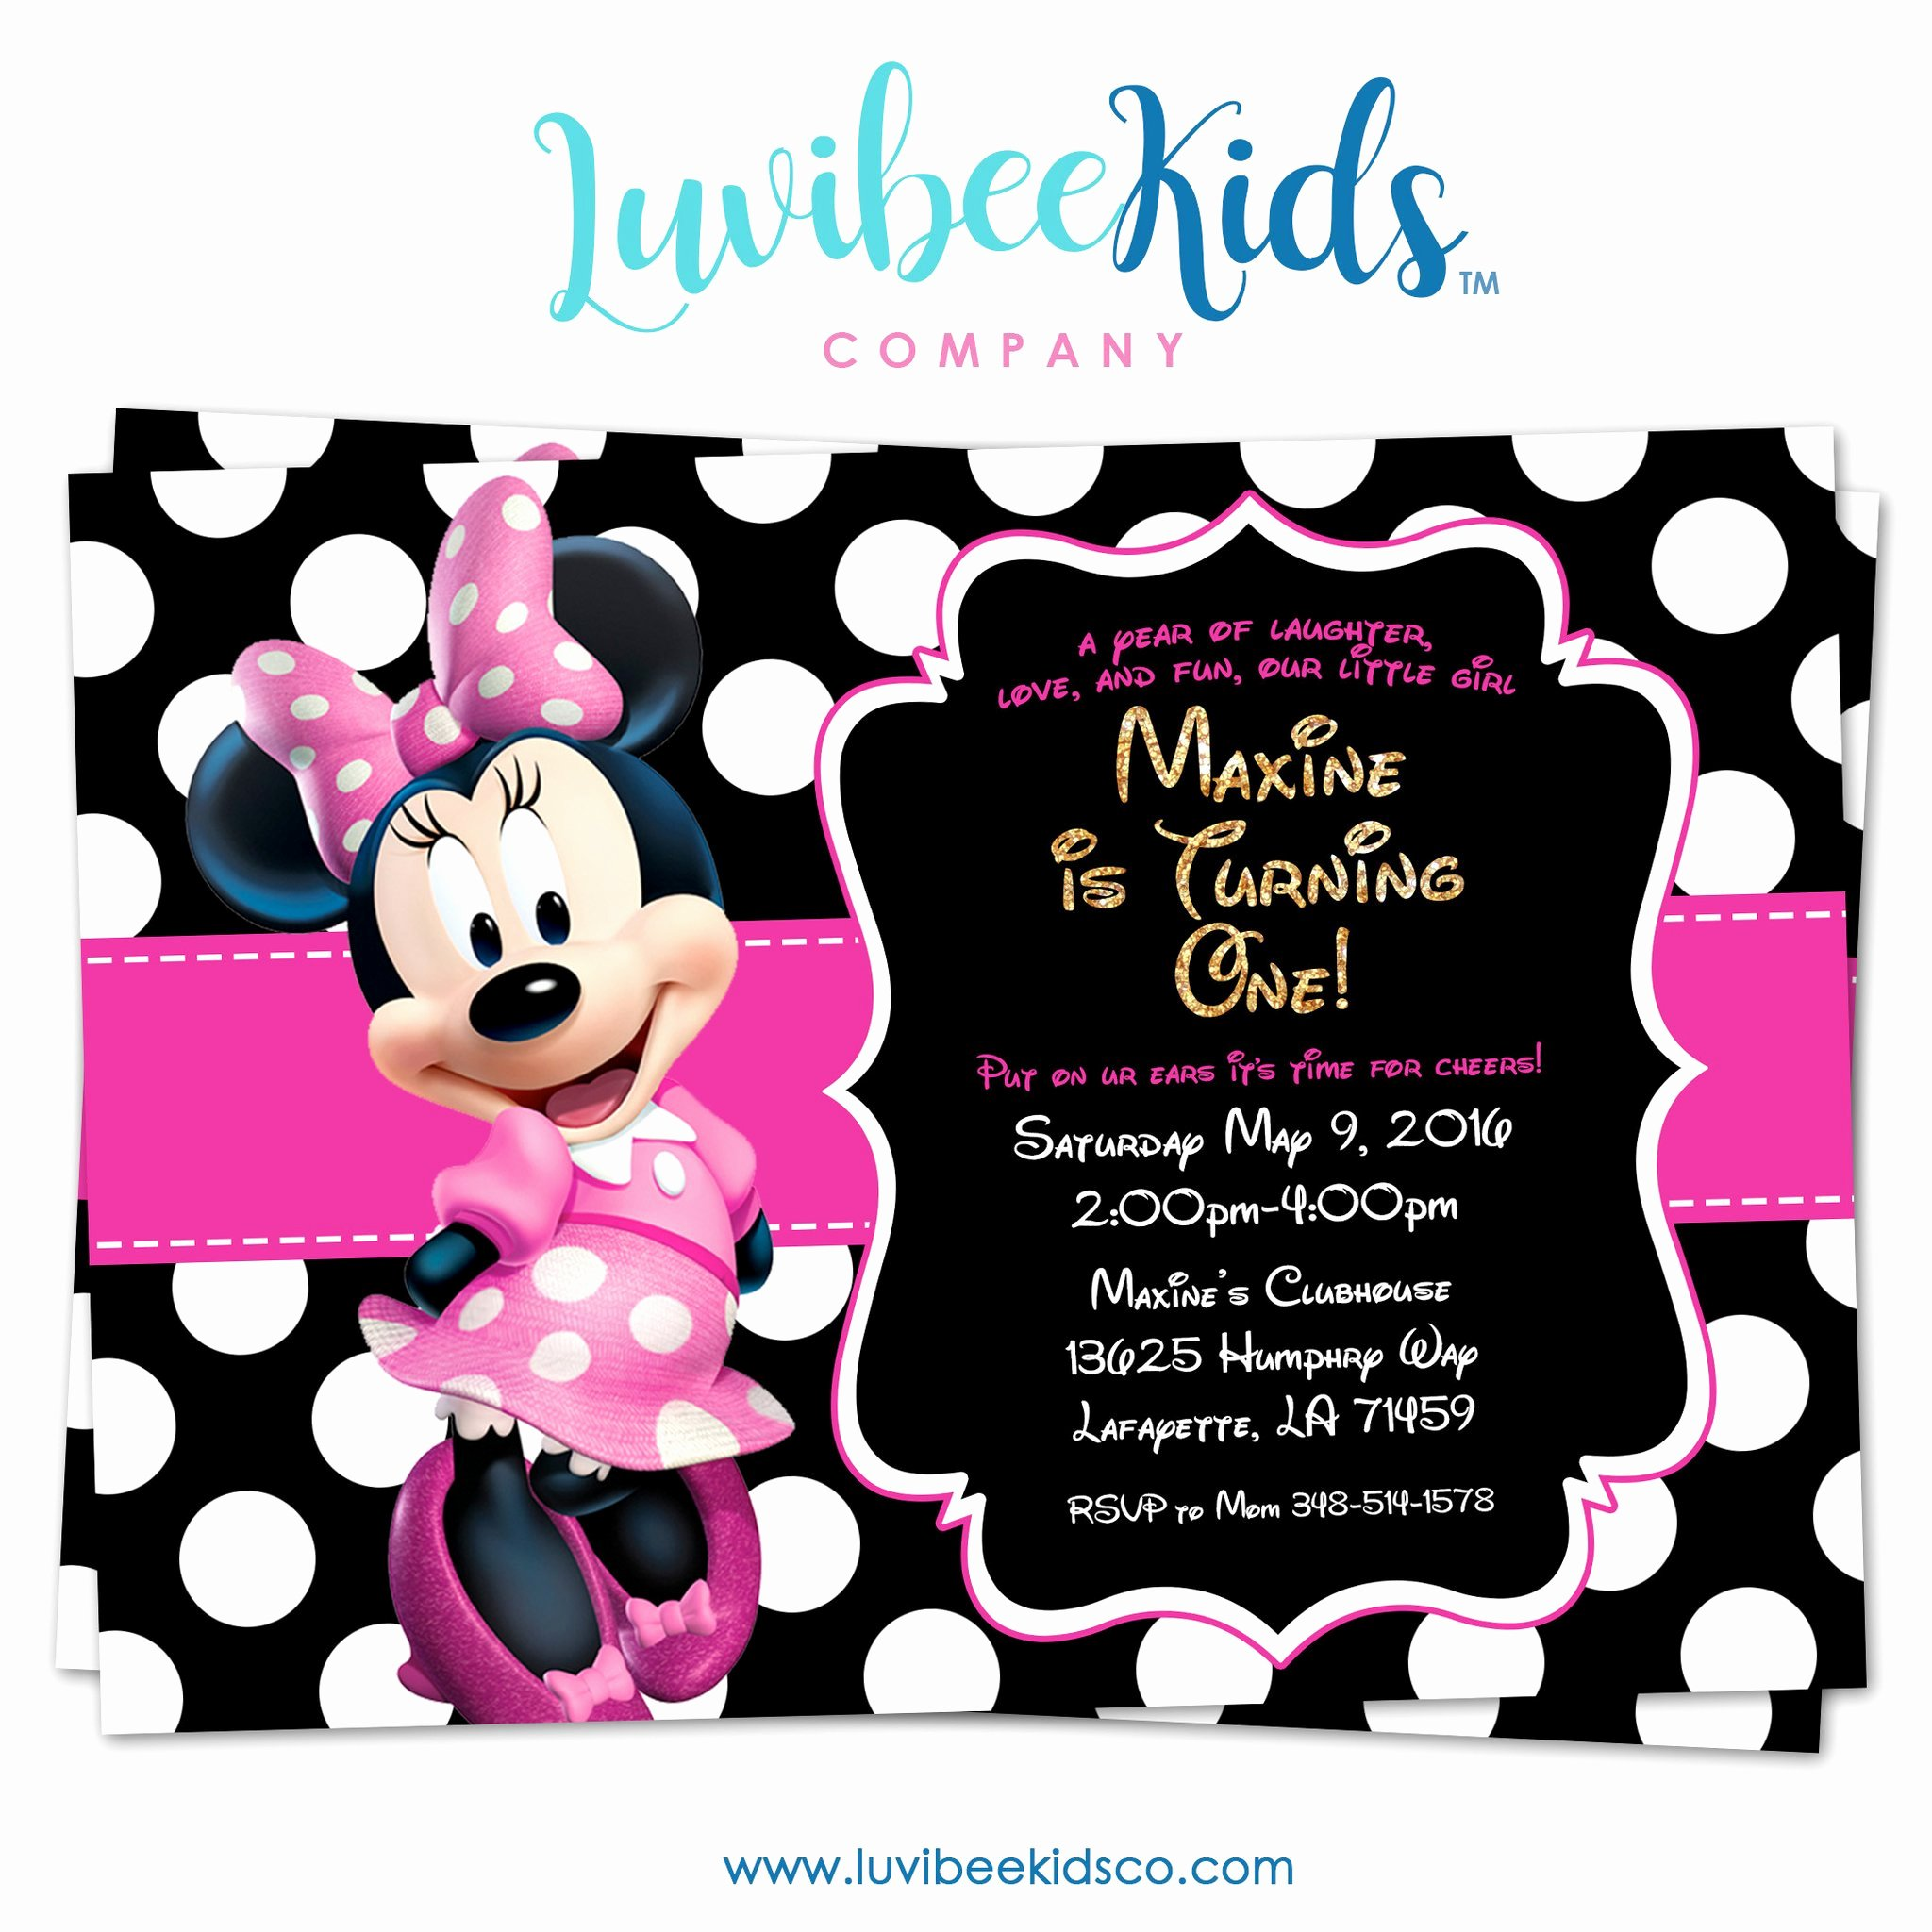 Printable Minnie Mouse Invitations Lovely Minnie Mouse Birthday Invitation Printable Invite